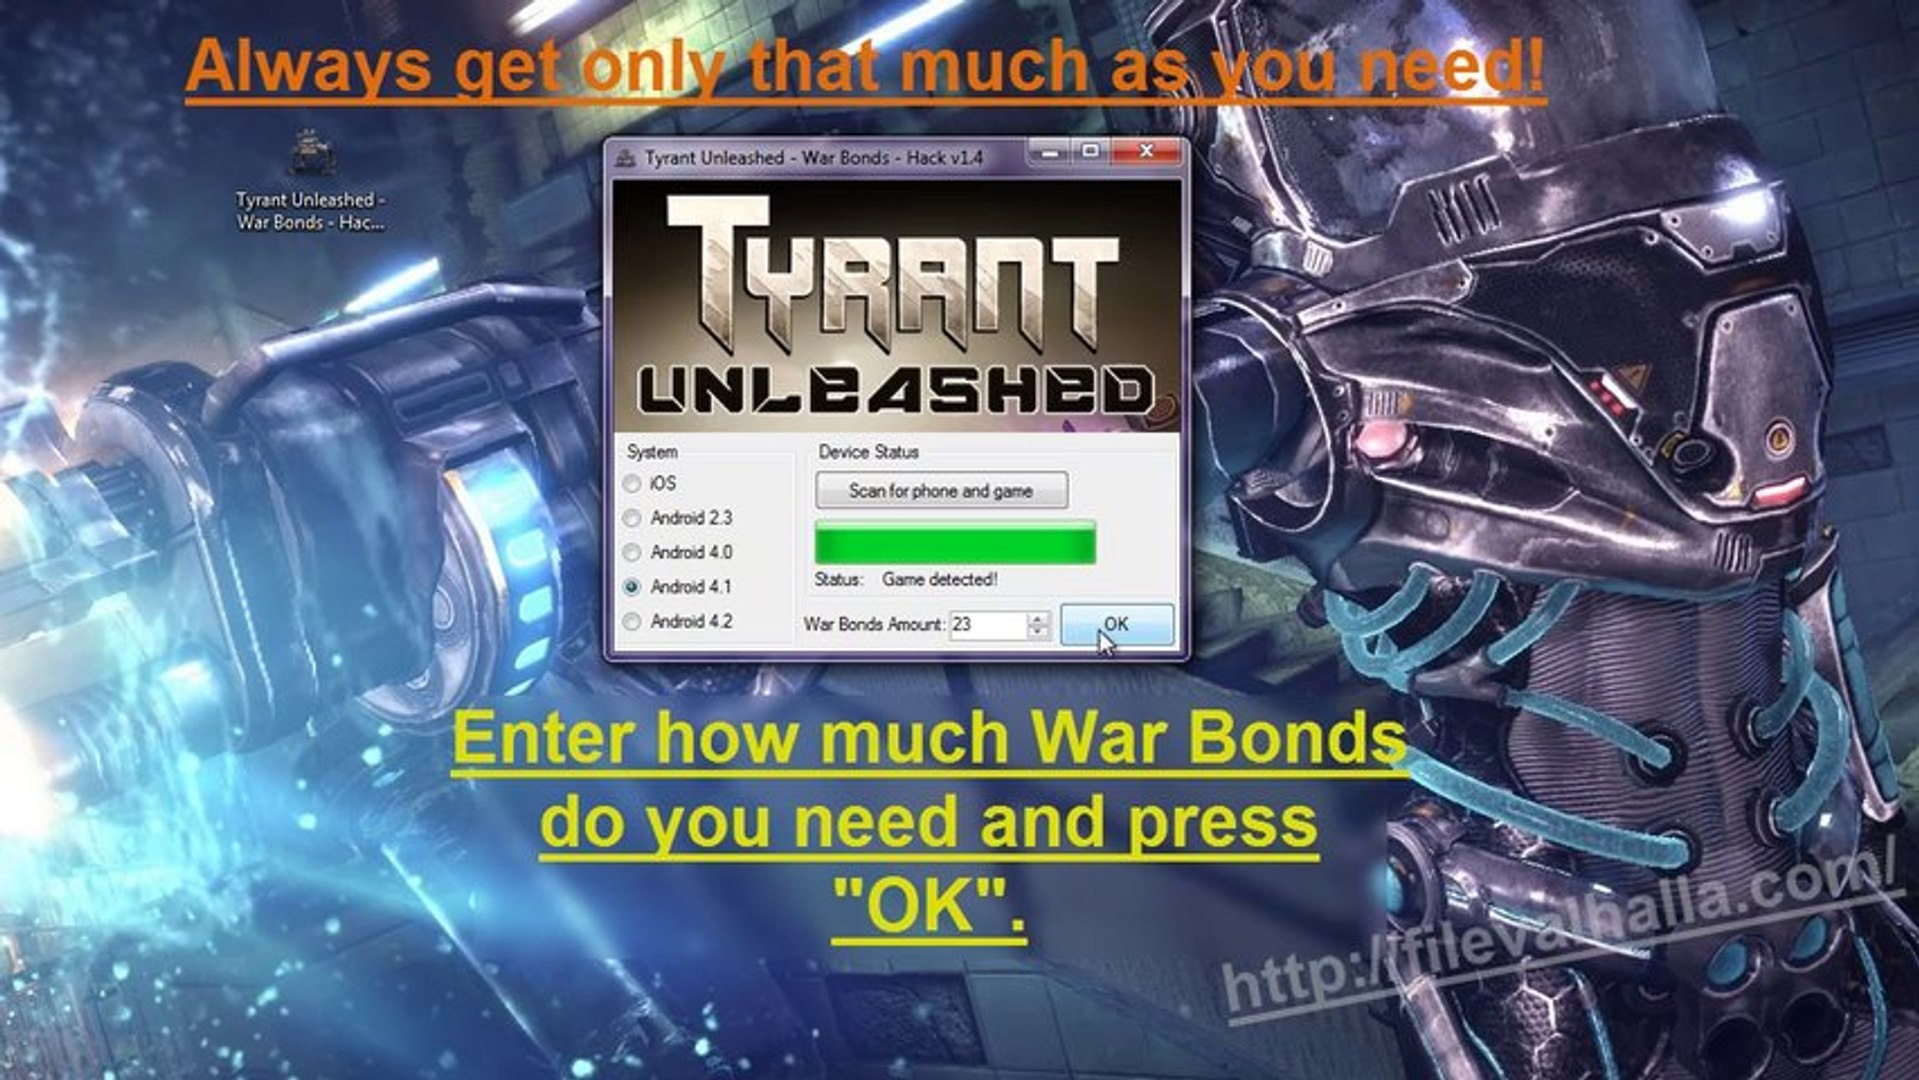 Tyrant Unleashed - War Bonds Hack - how to get War Bonds for free? [iOS/Android]